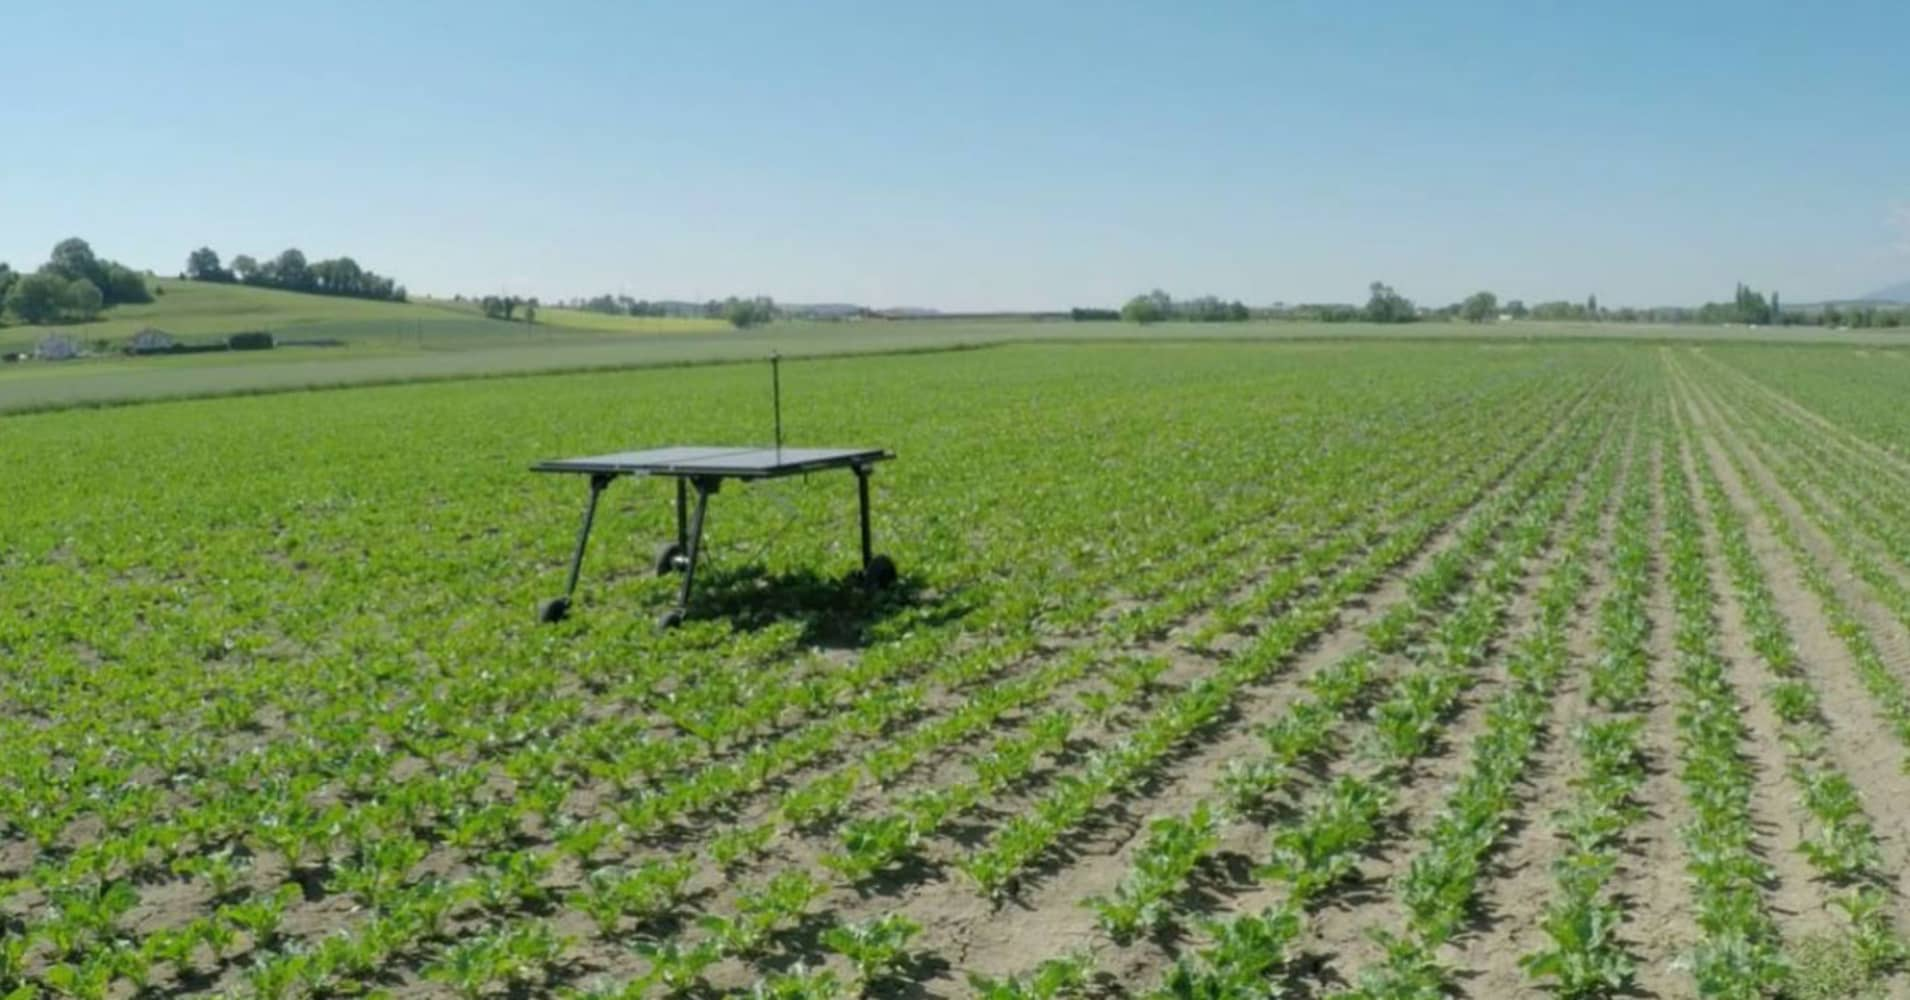 This weed-killing AI robot can tell crops apart